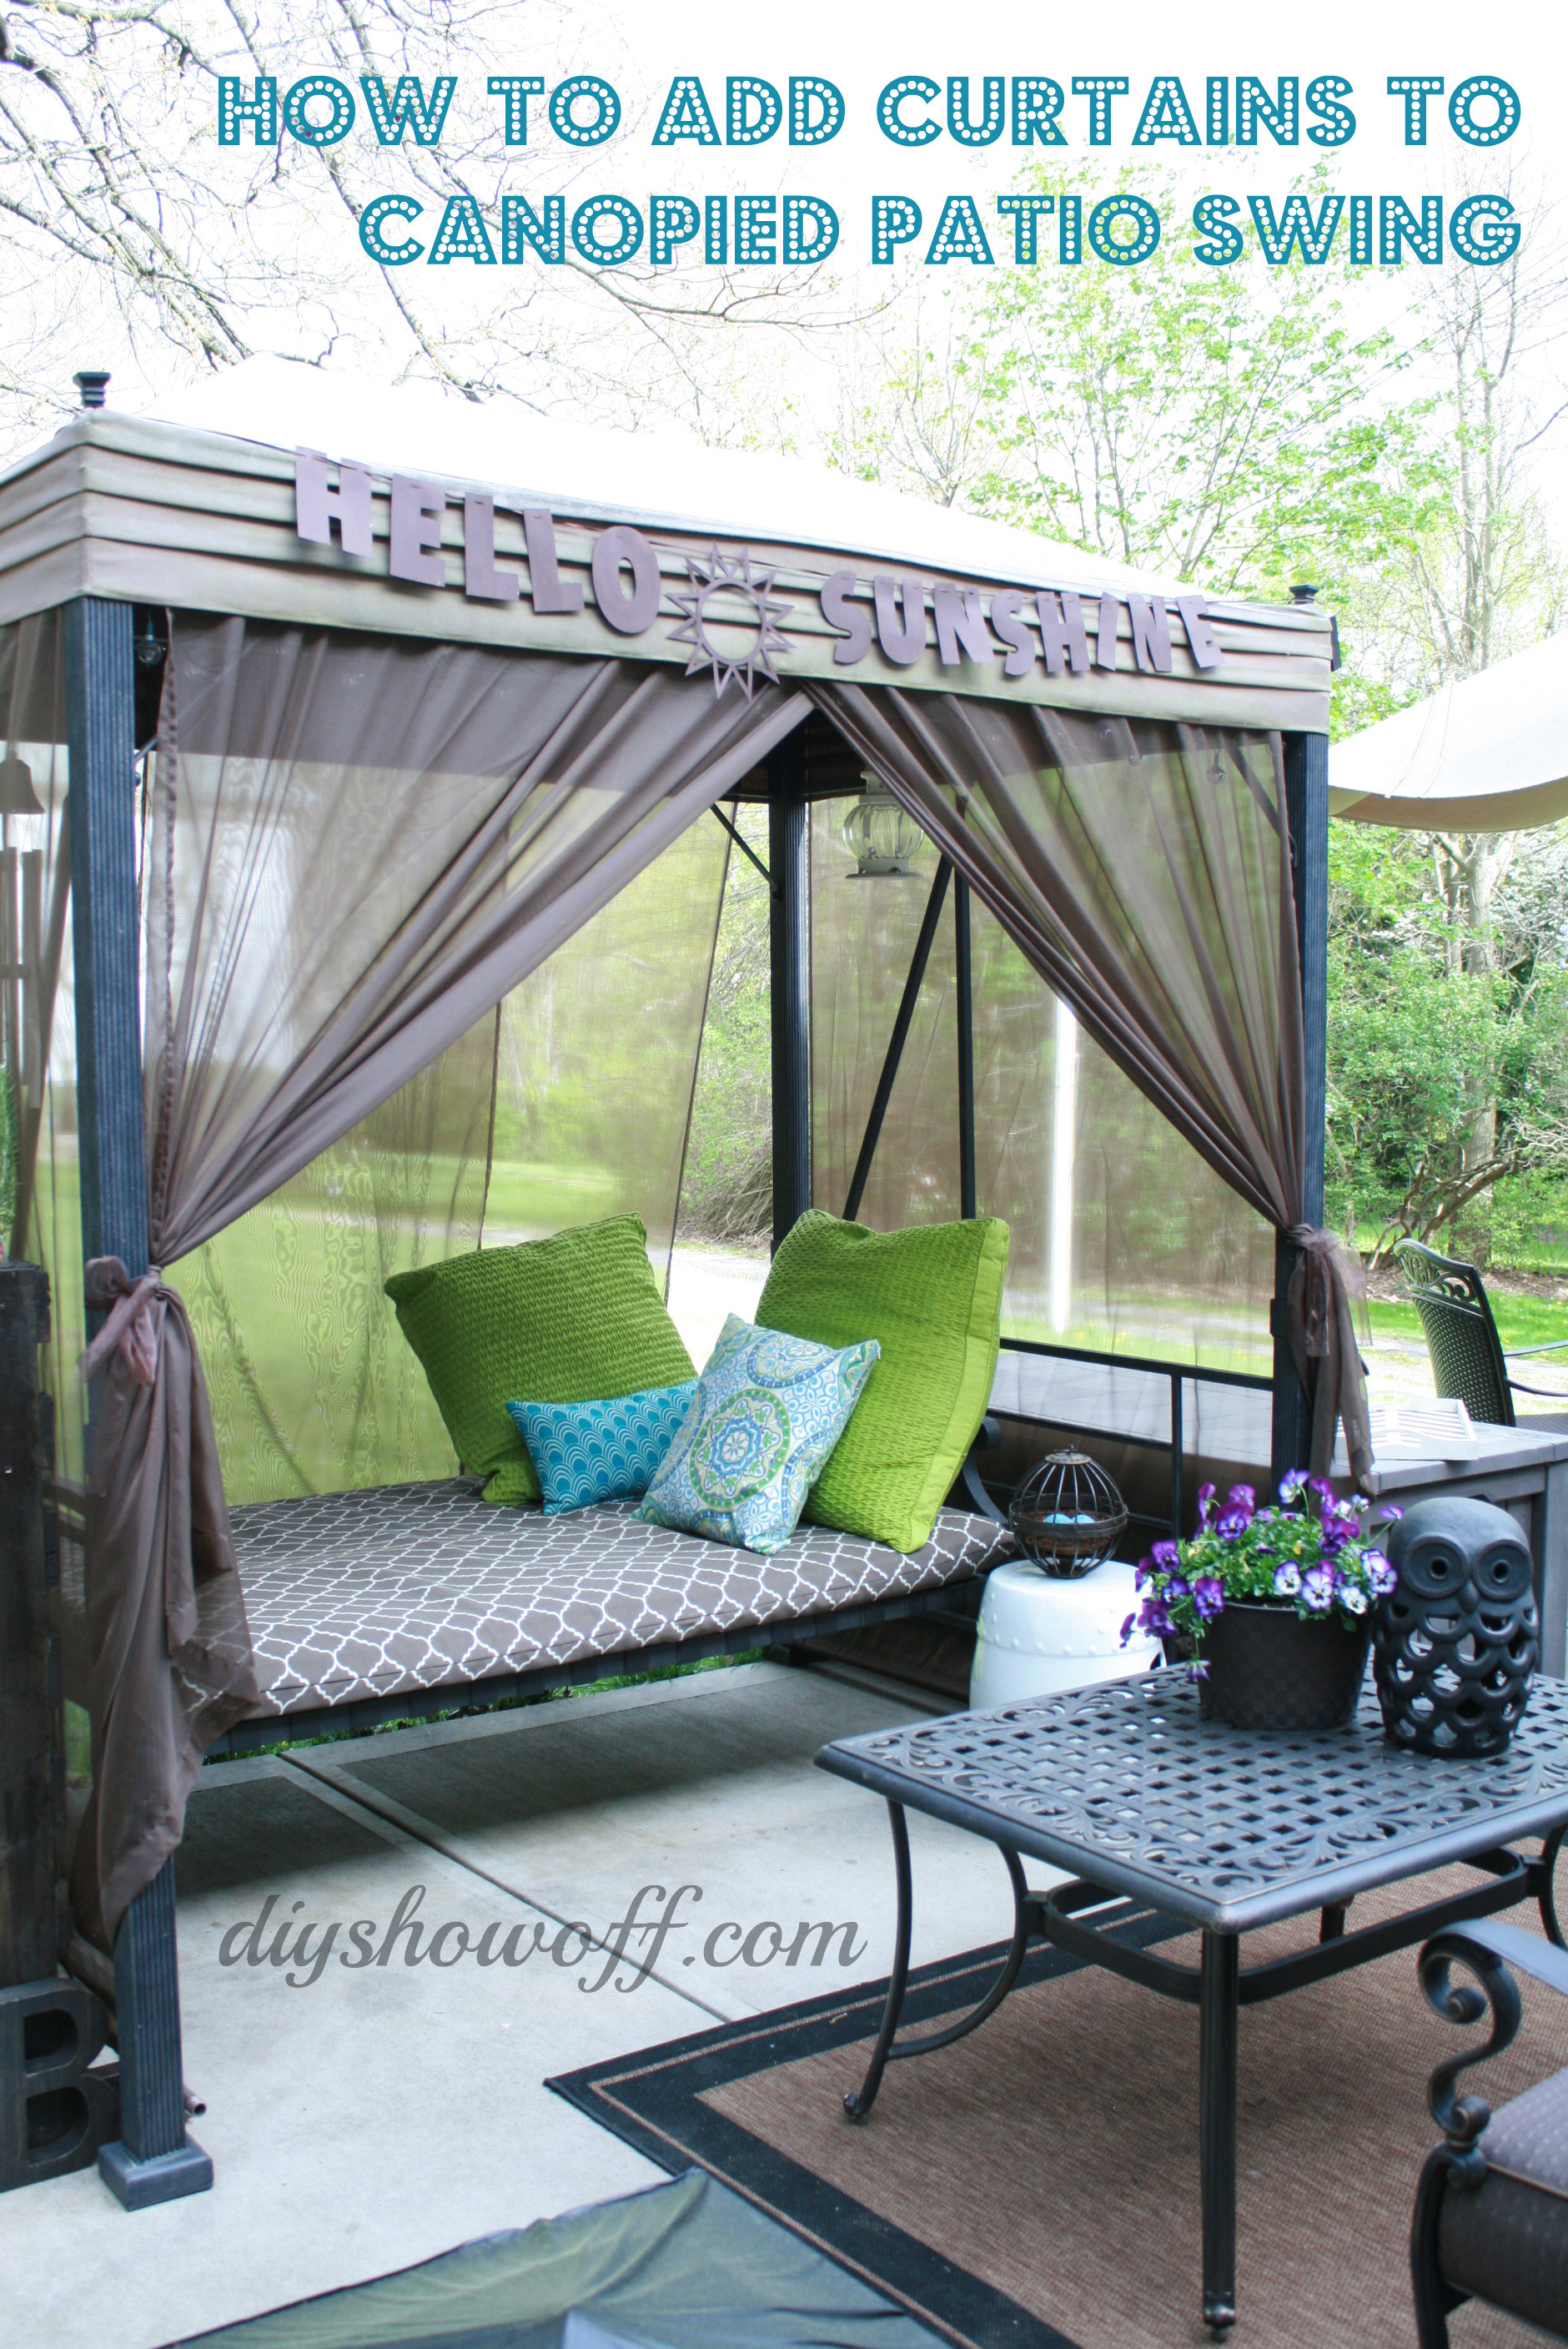 Epic how to add curtains to a patio swing